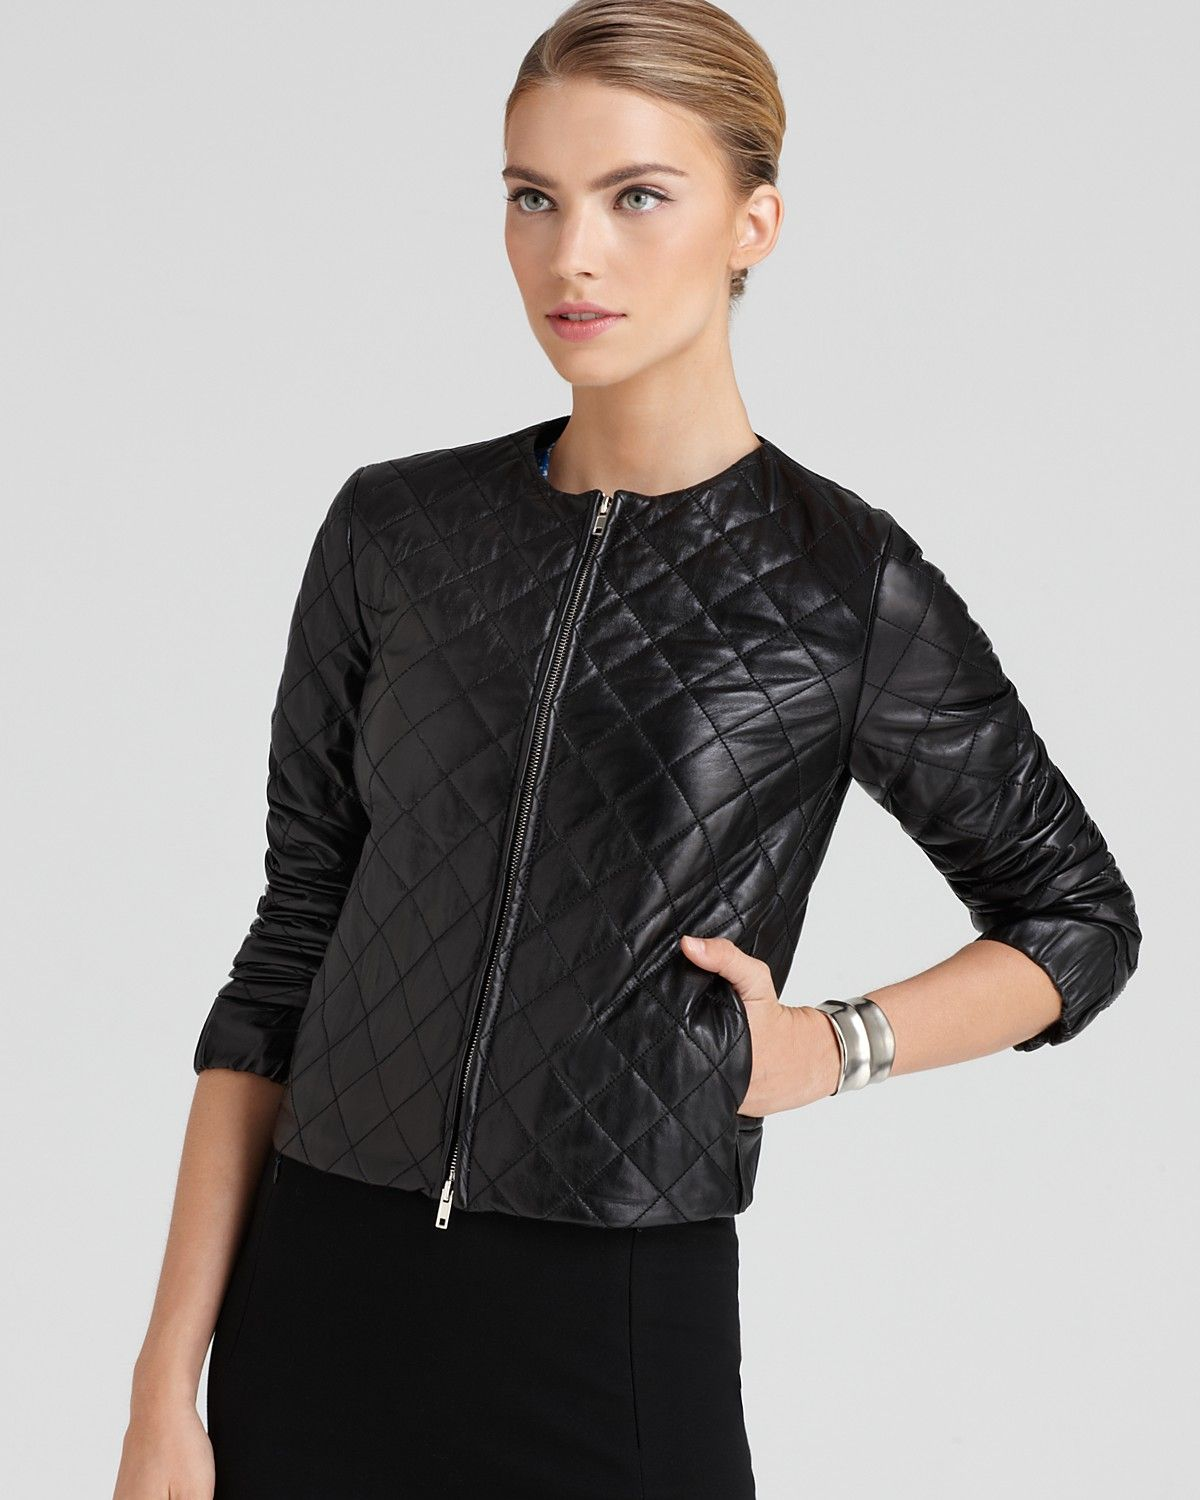 DIANE von FURSTENBERG Jacket - Delilah Leather | Bloomingdale's  Also check out http://evandthecity.com/2013/02/21/birthday-girl-gifts/